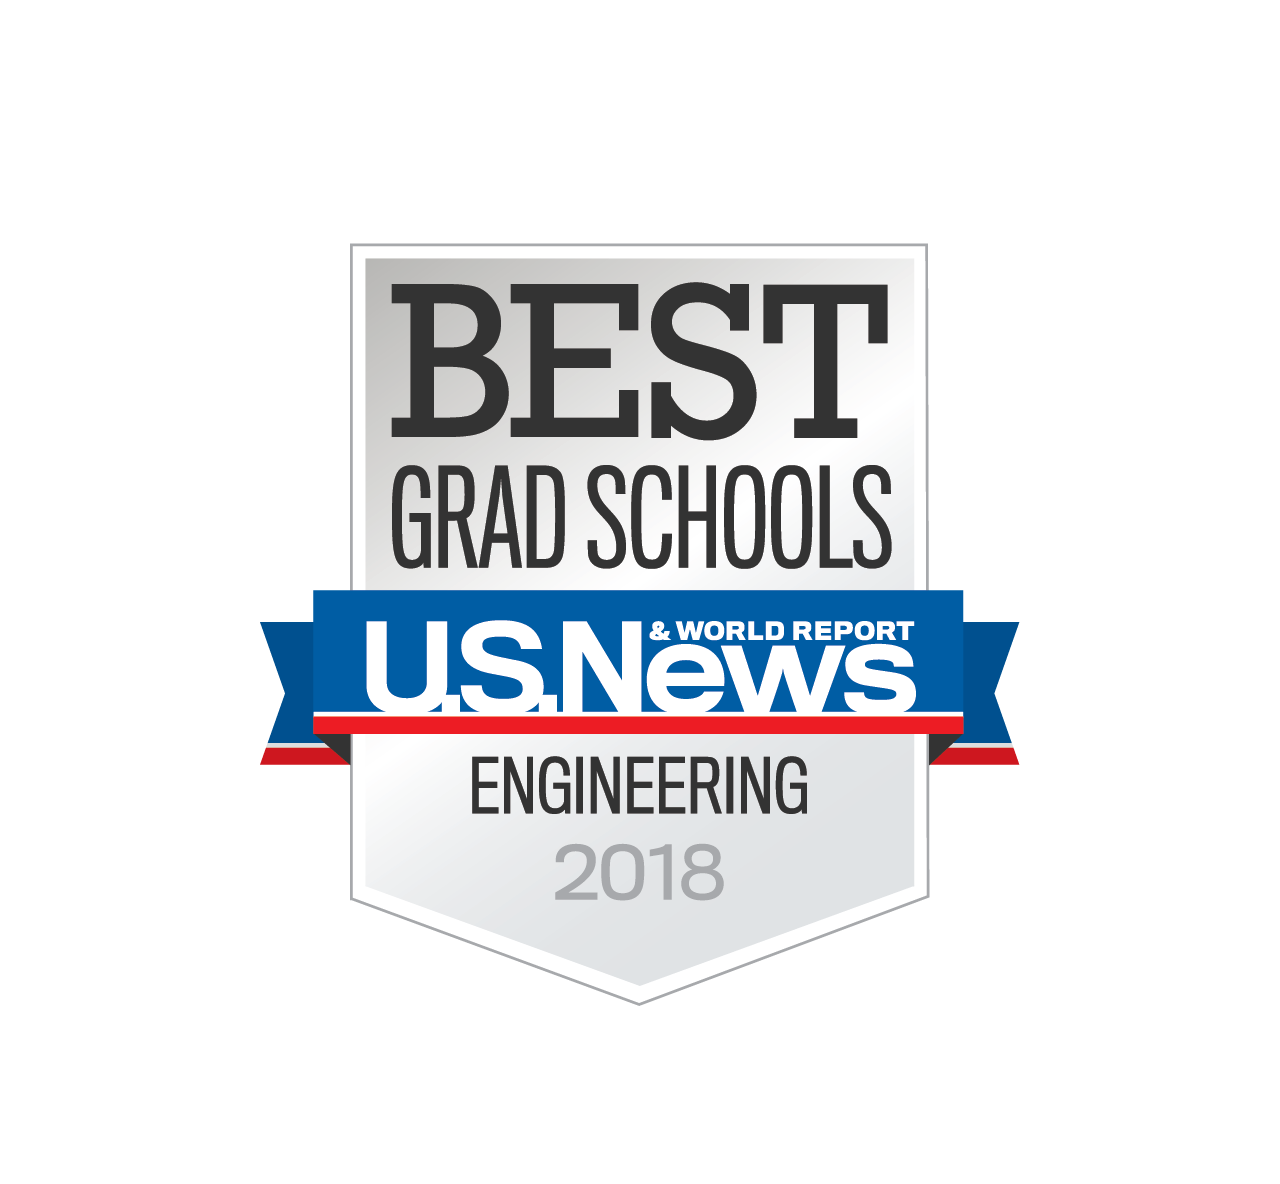 US News badge - Best Grad Schools - Engineering 2018